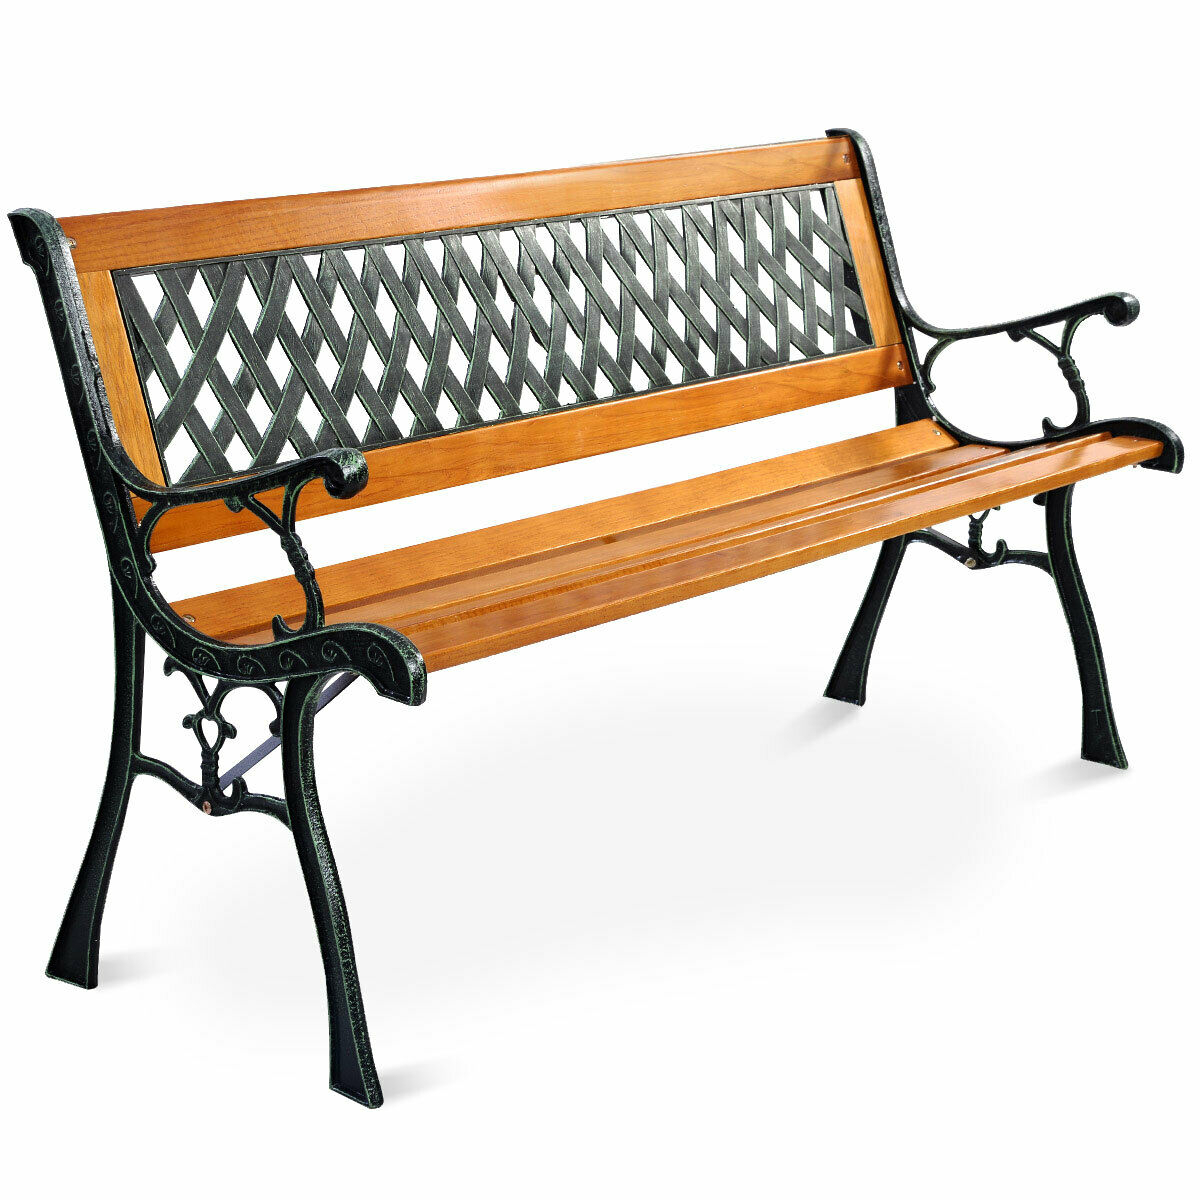 "49 1/2"" Patio Park Garden Bench Porch Path Chair Outdoor Deck Cast Iron Hardwood With Regard To Iron Grove Slatted Glider Benches (View 14 of 26)"